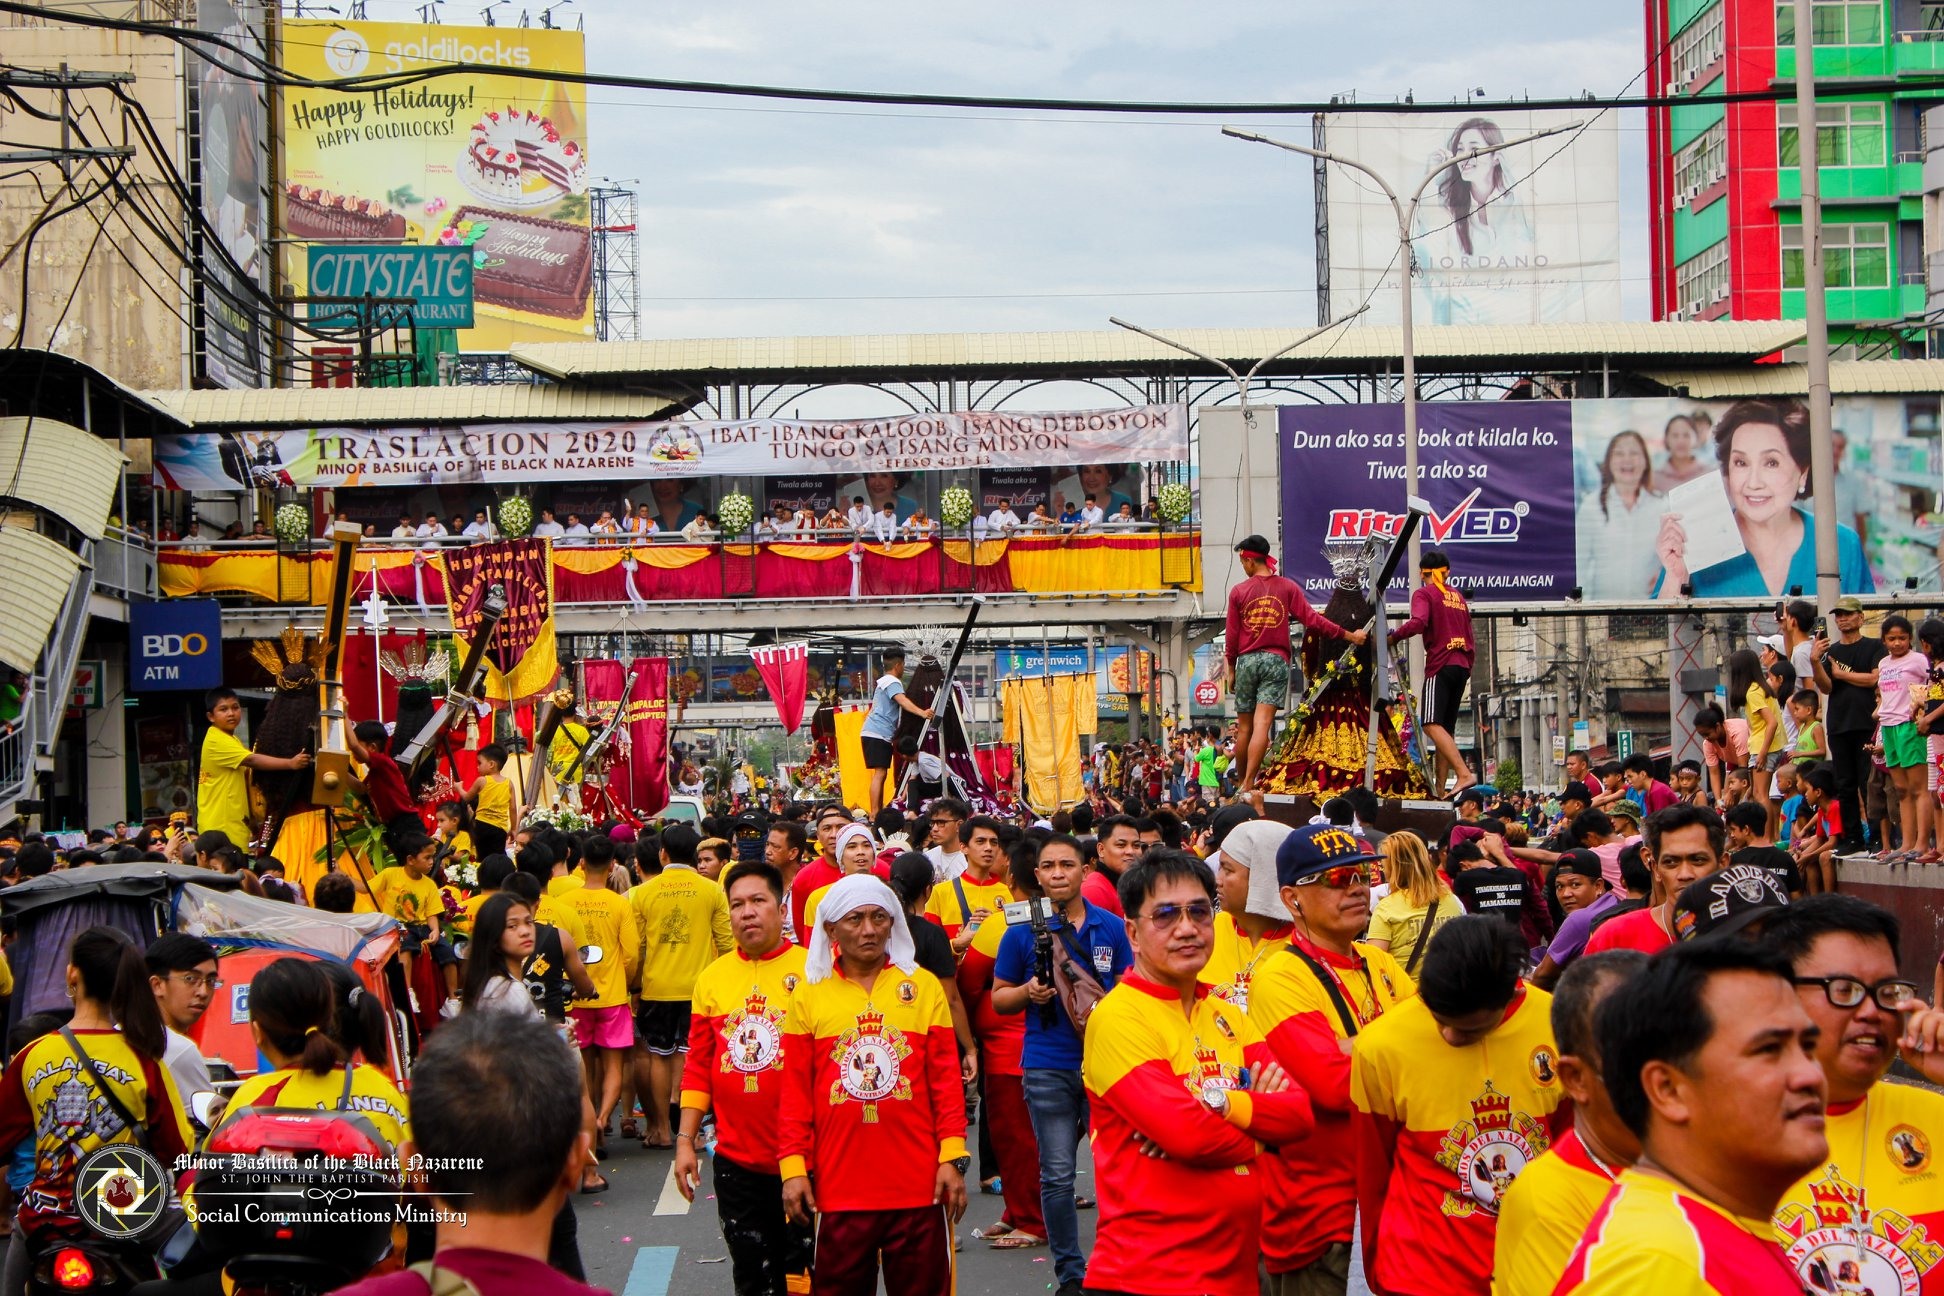 The Feast of the Traslacion Photo by Quiapo Church - Minor Basilica of the Black Nazarene